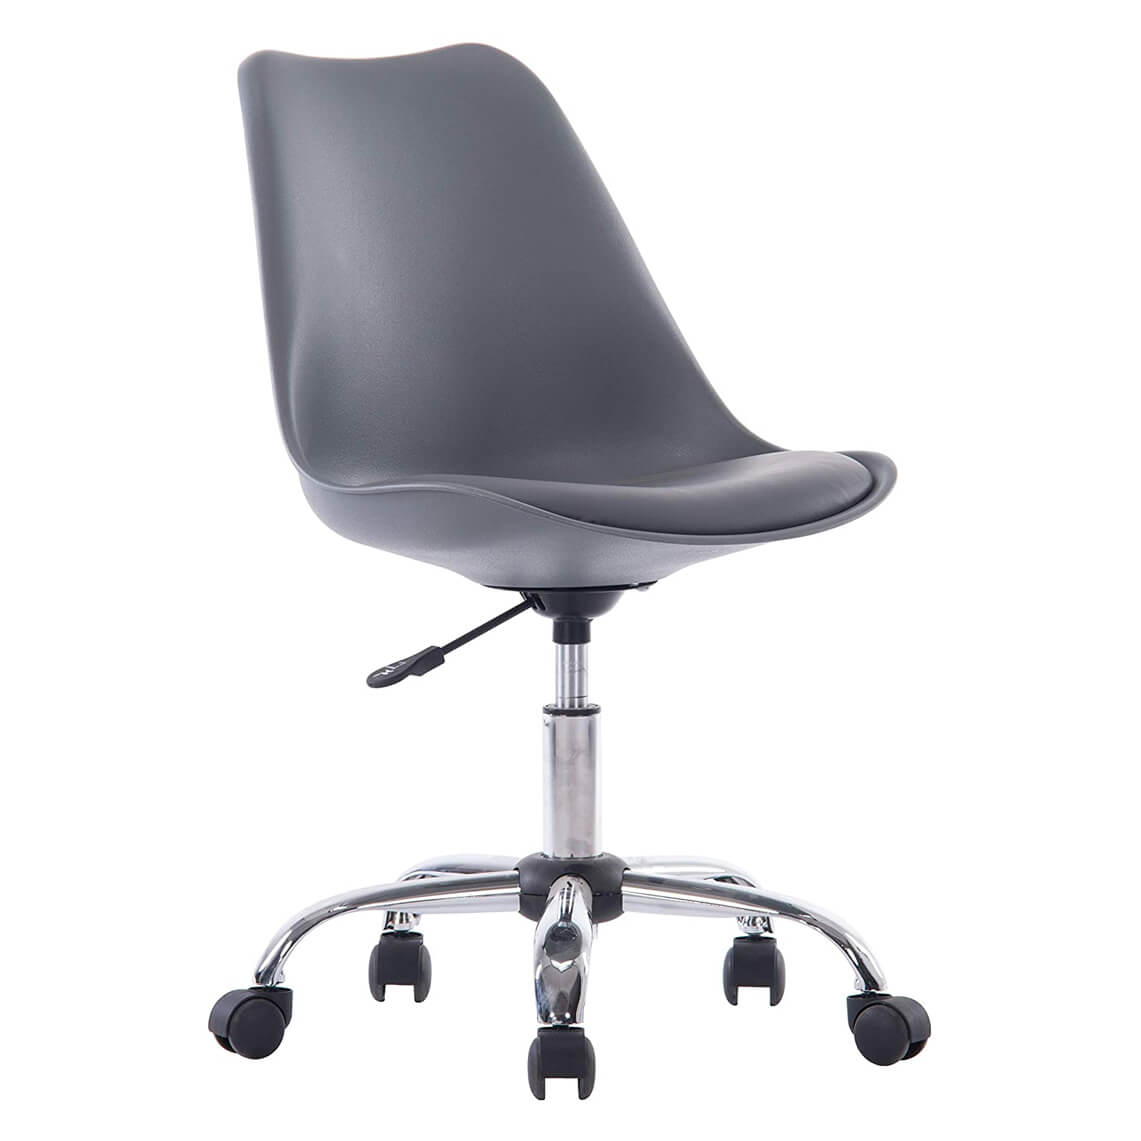 Porthos Home LVC008A Office Desk Chair